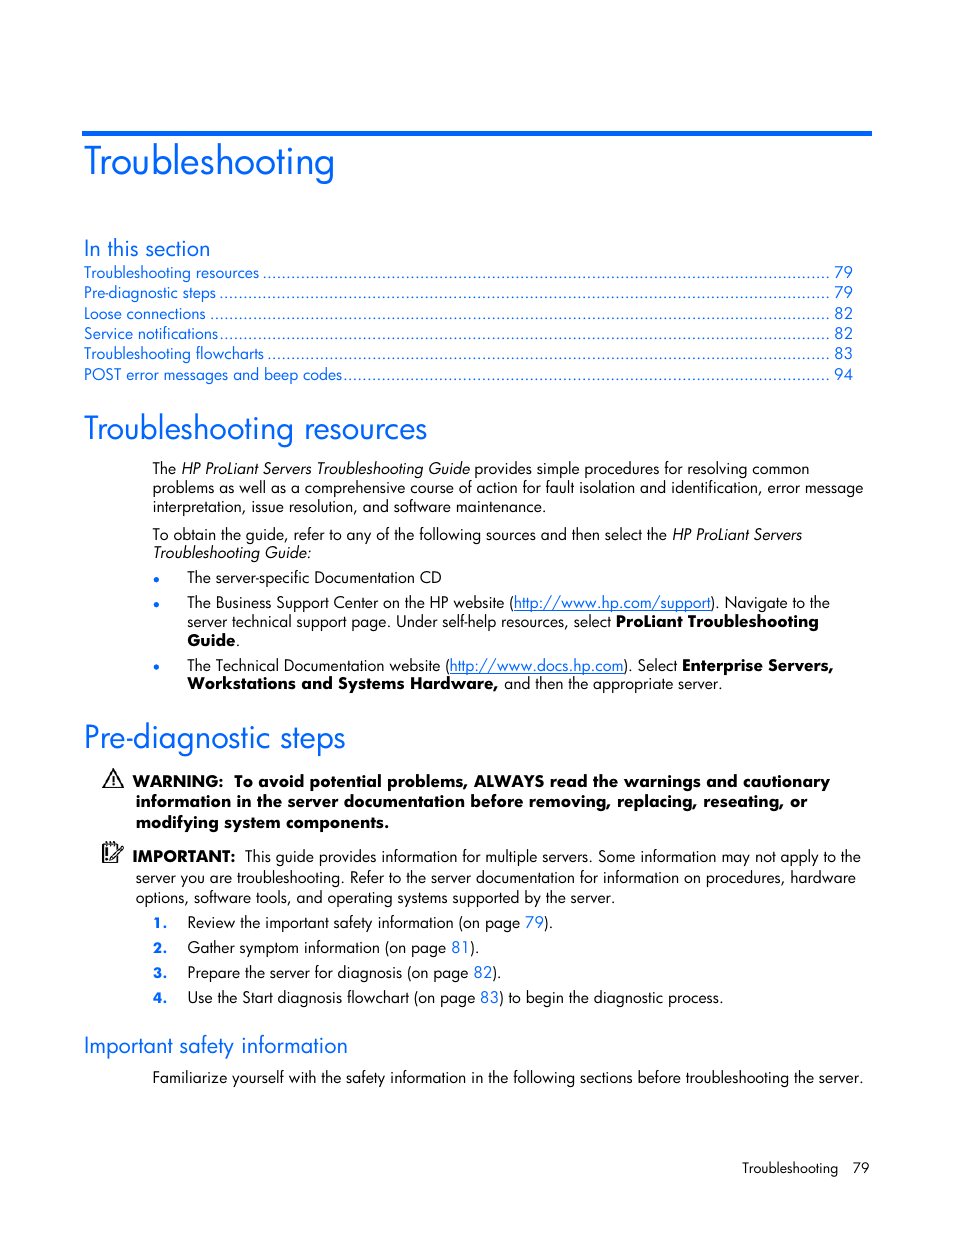 Troubleshooting, Troubleshooting resources, Pre-diagnostic steps | HP  ProLiant DL360 G5 Server User Manual | Page 79 / 118